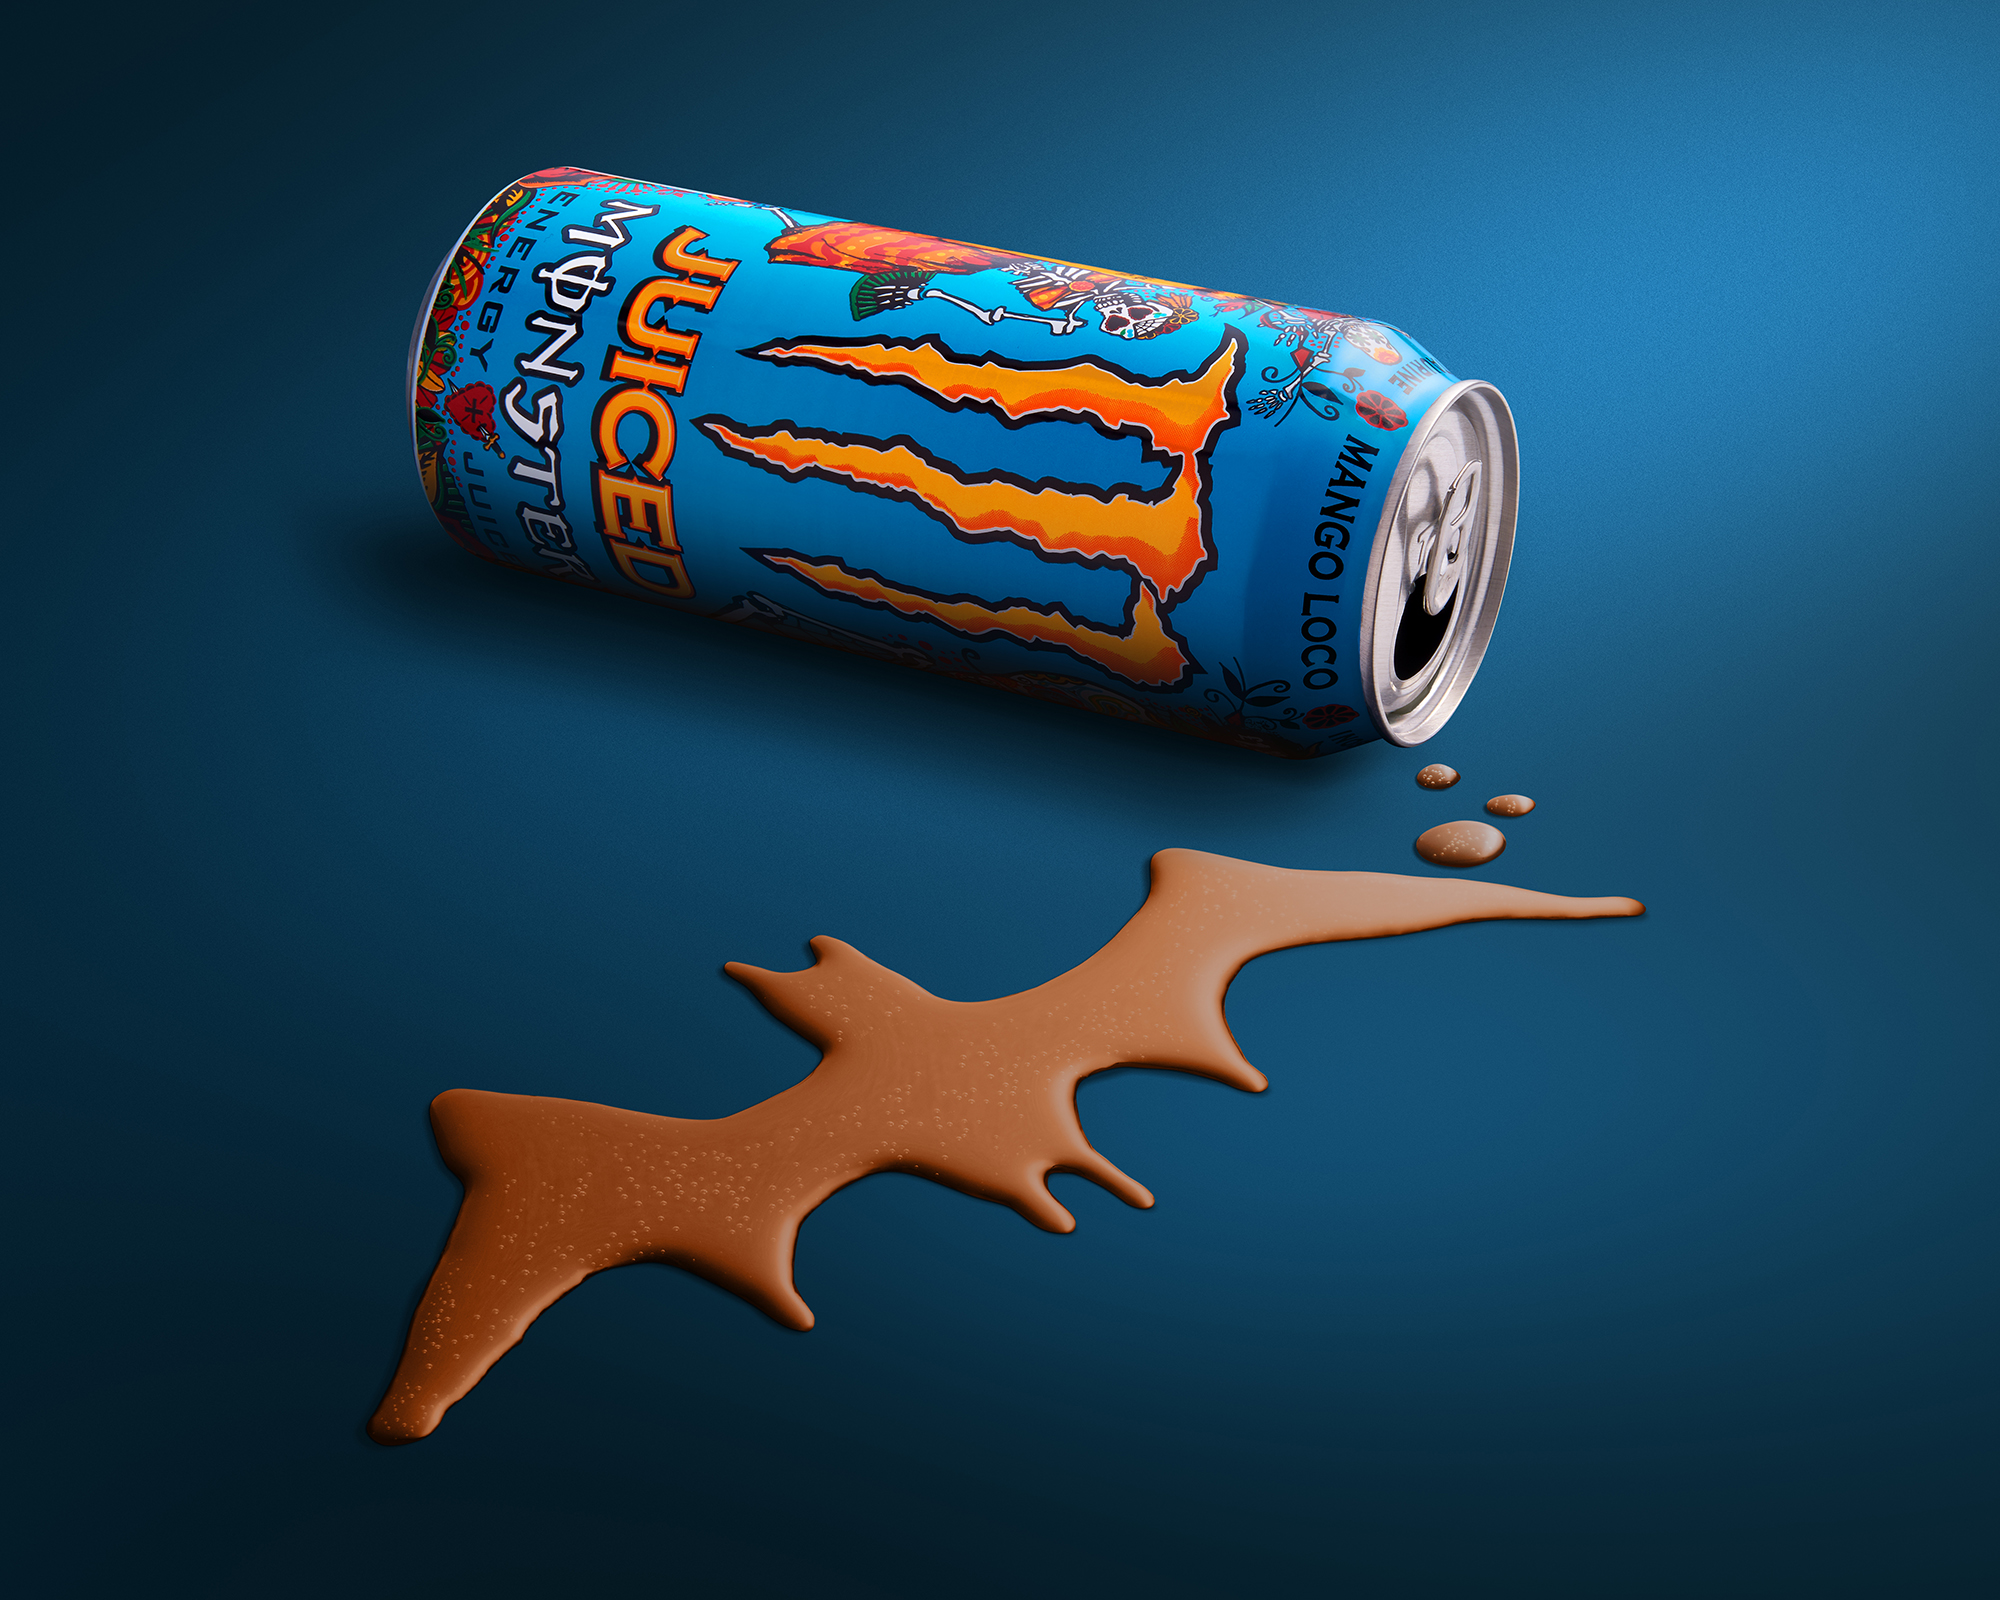 Product drink image, halloween bat by commercial photographer Ian Knaggs